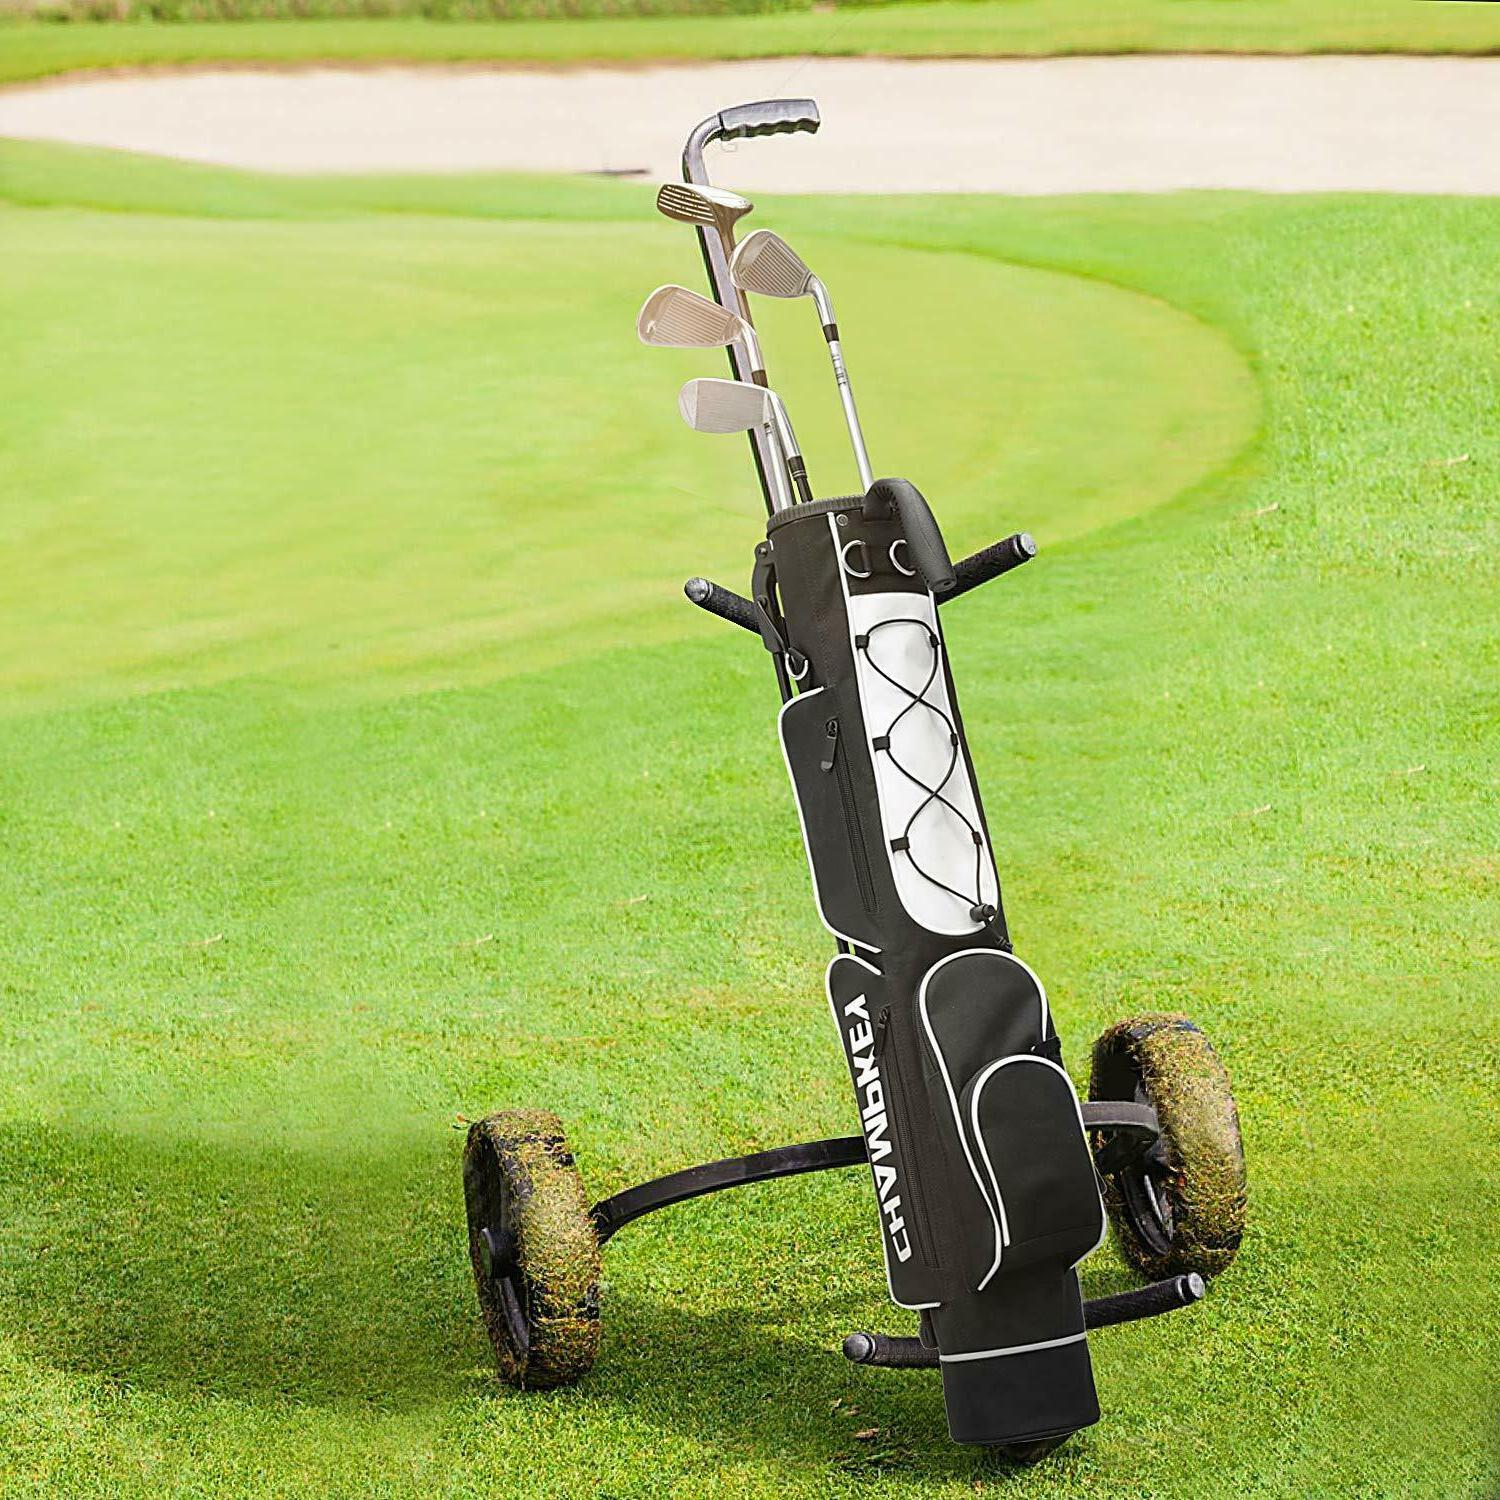 Champkey Bag - Easy Carry Pitch Golf